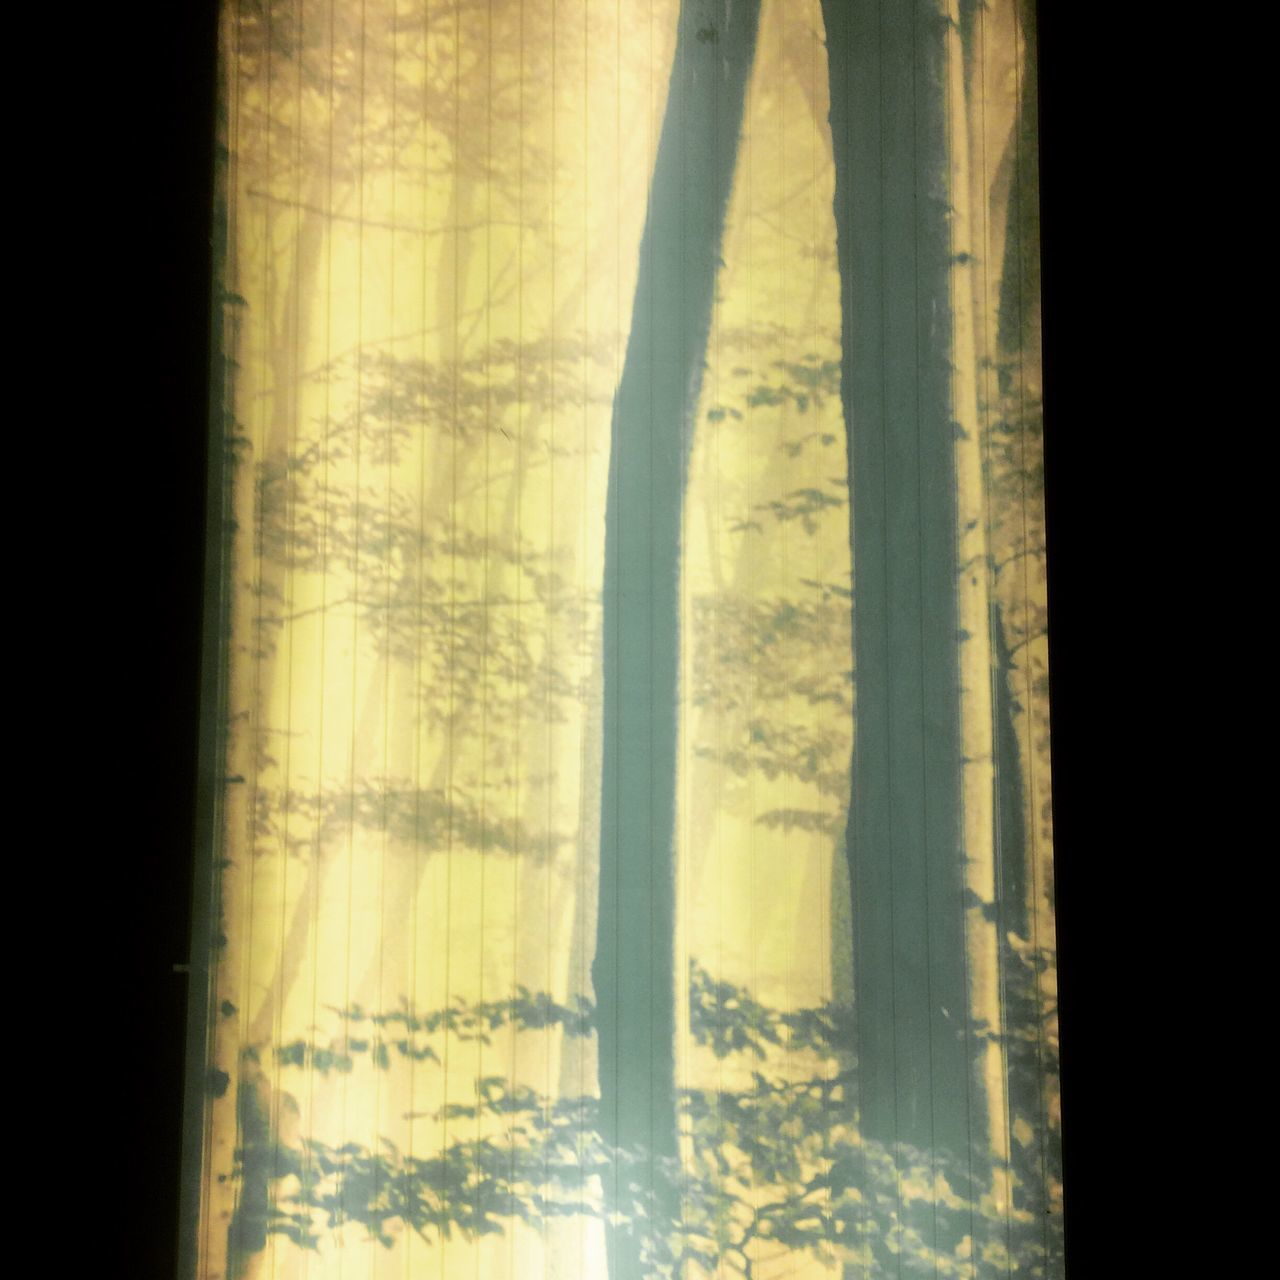 curtain, drapes, no people, black background, day